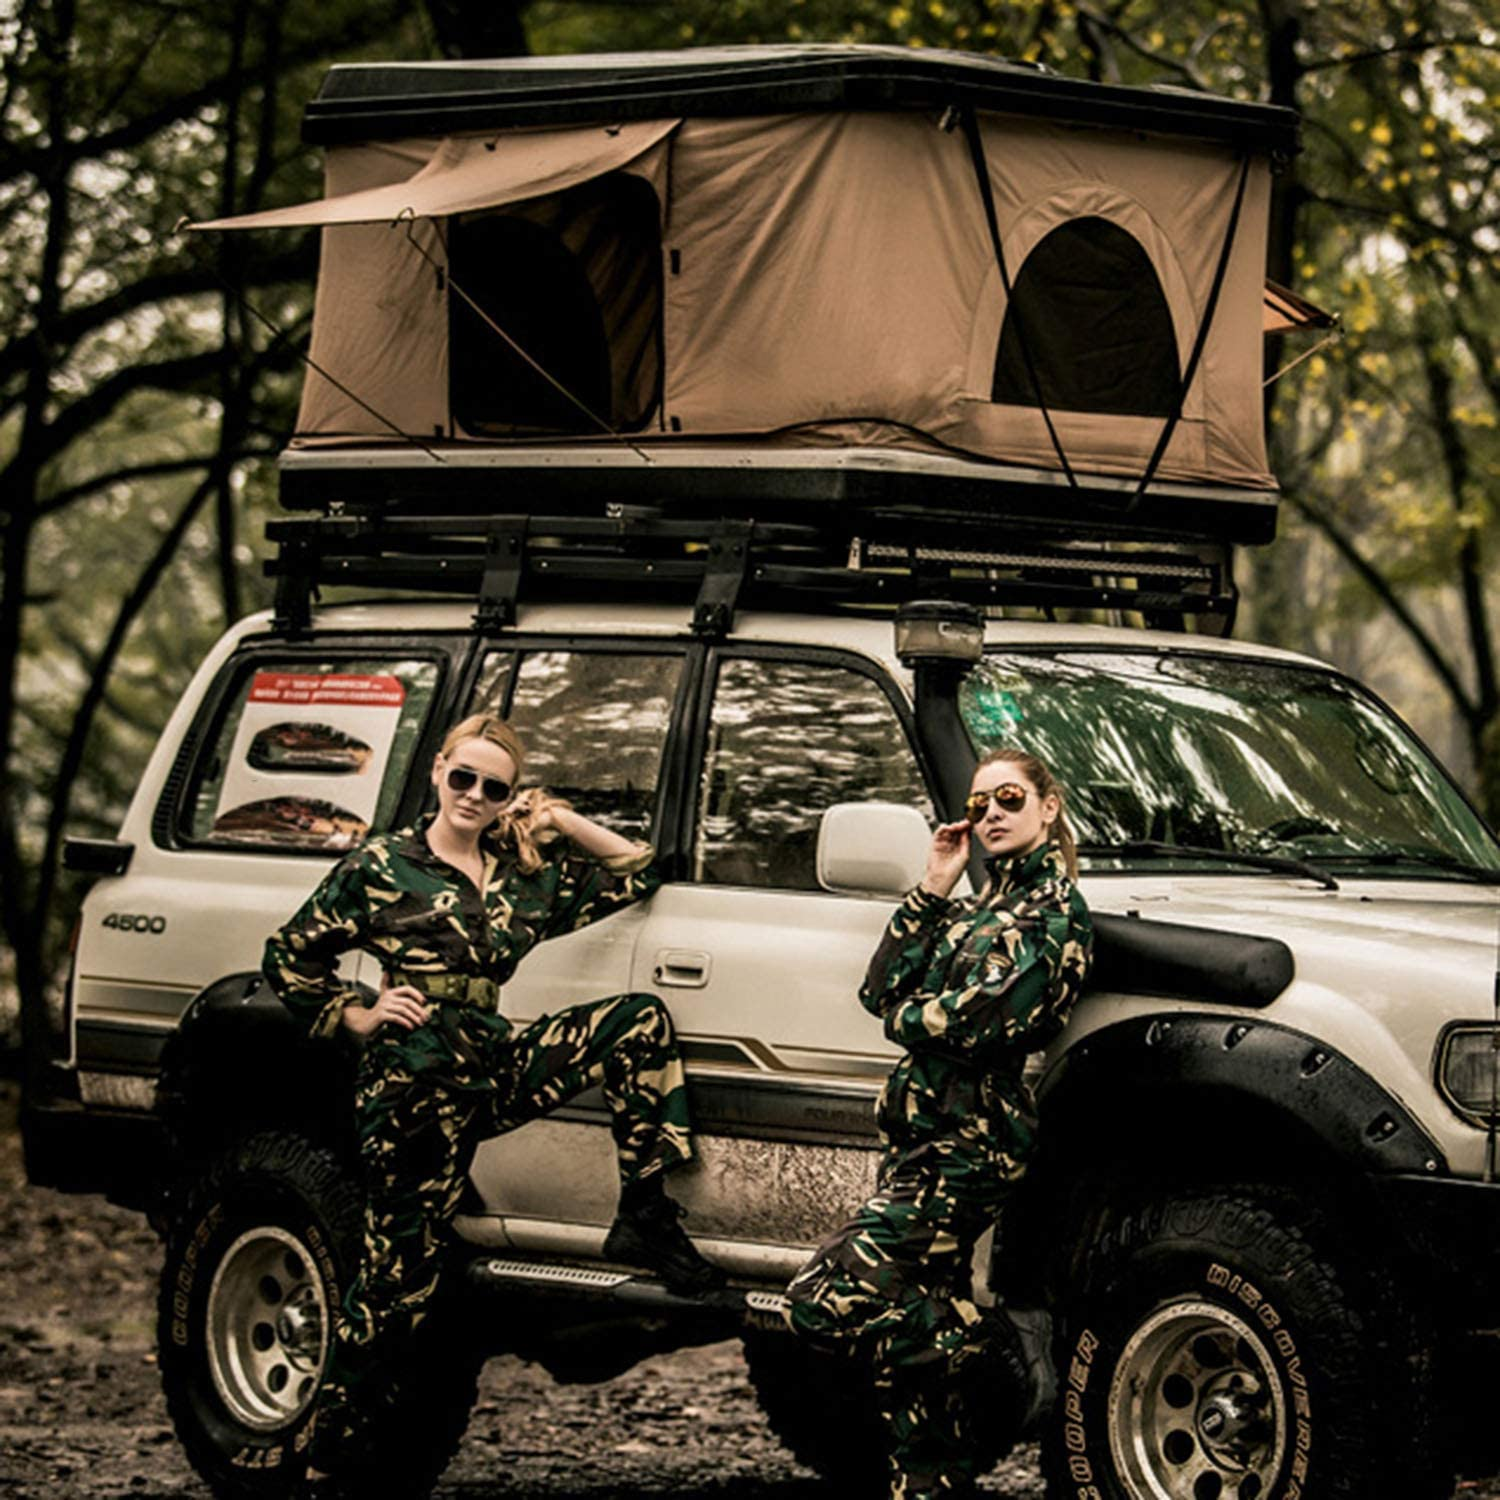 Hard Top Tent One Bedroom Hydraulic Helicopter Roof Tent Camping ABS Car Tent